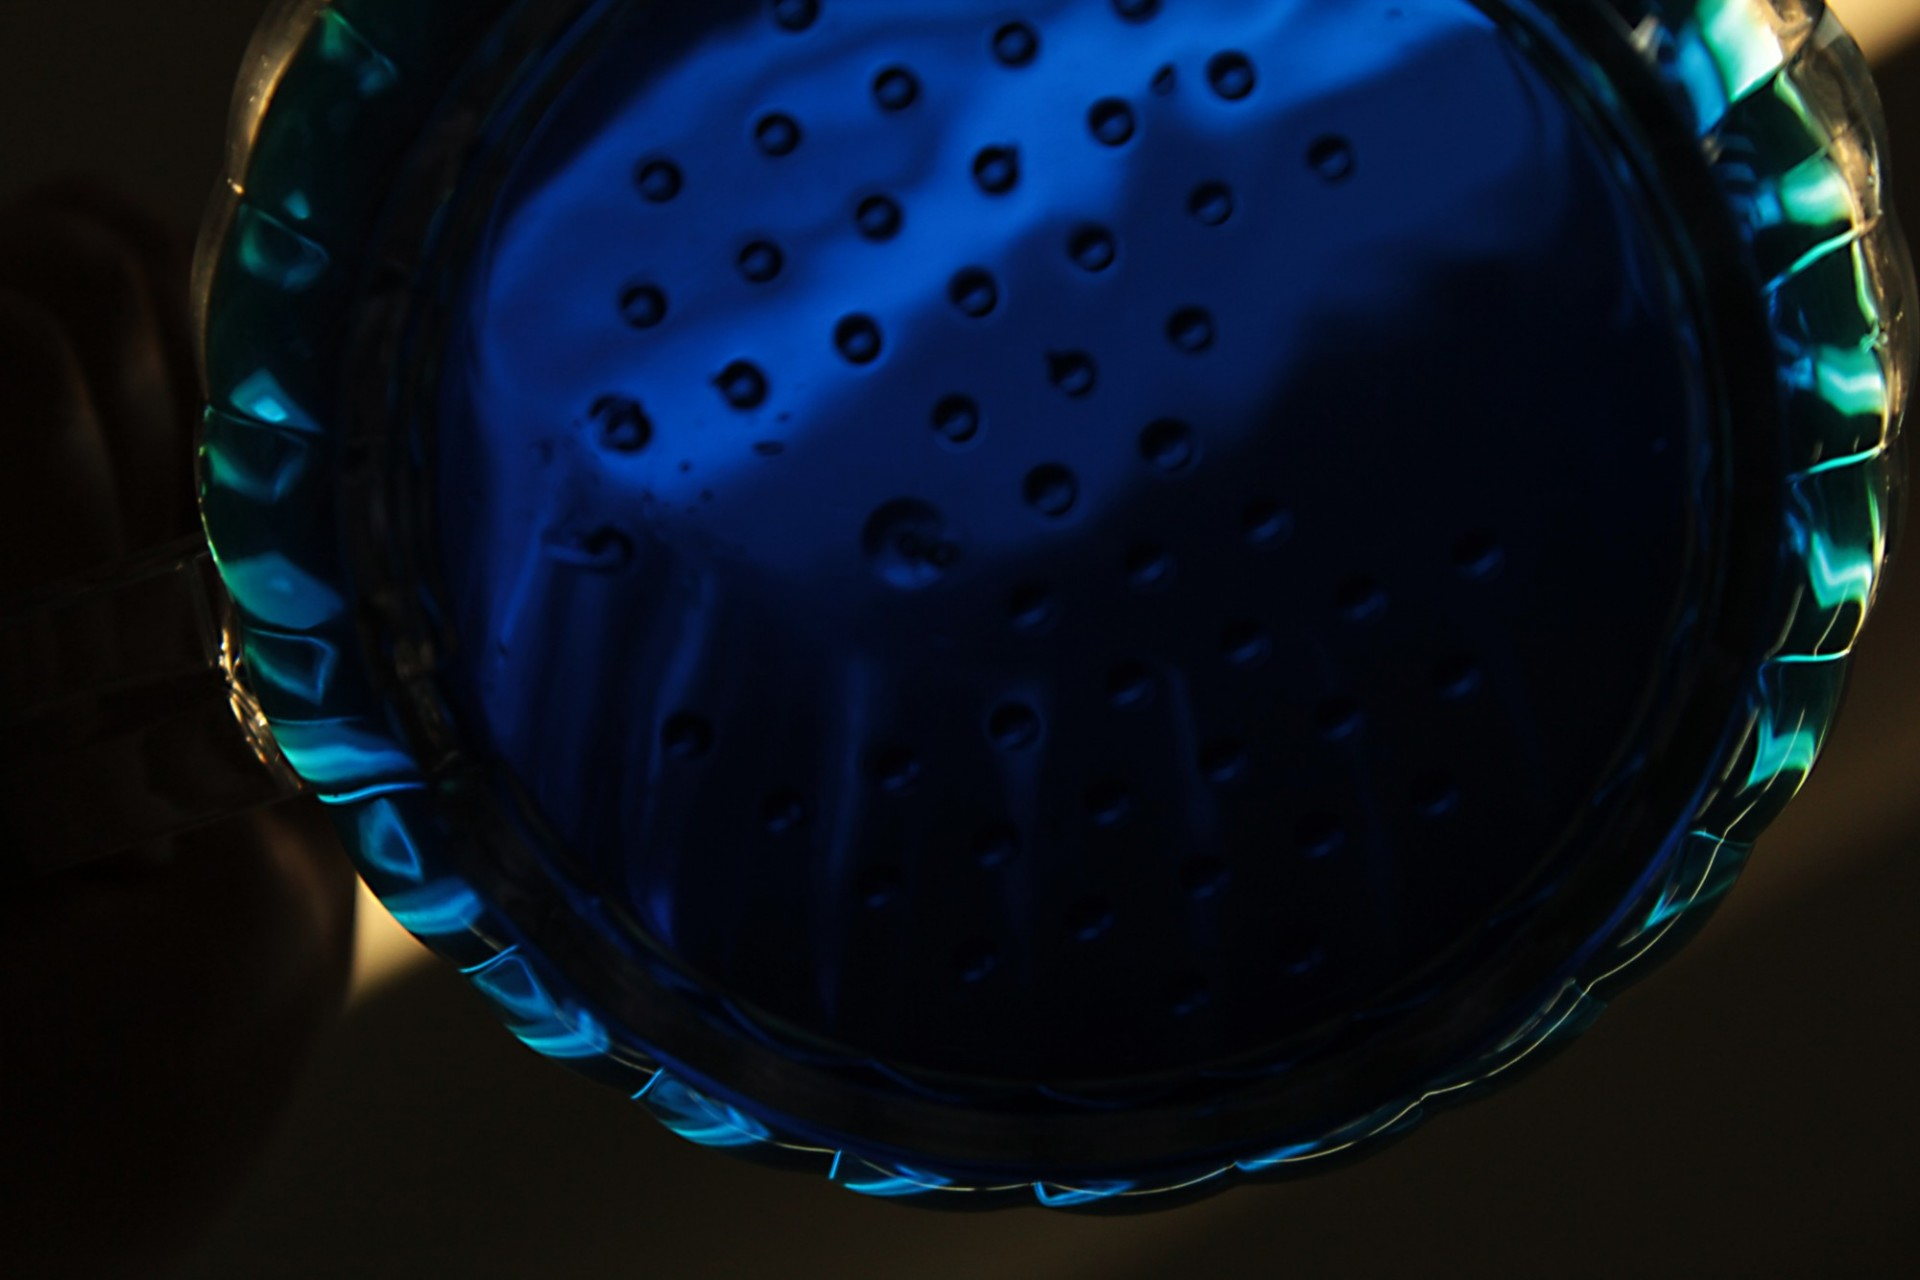 Close-up, dark image of a hard-to-distinguish round object, perhaps a shower head